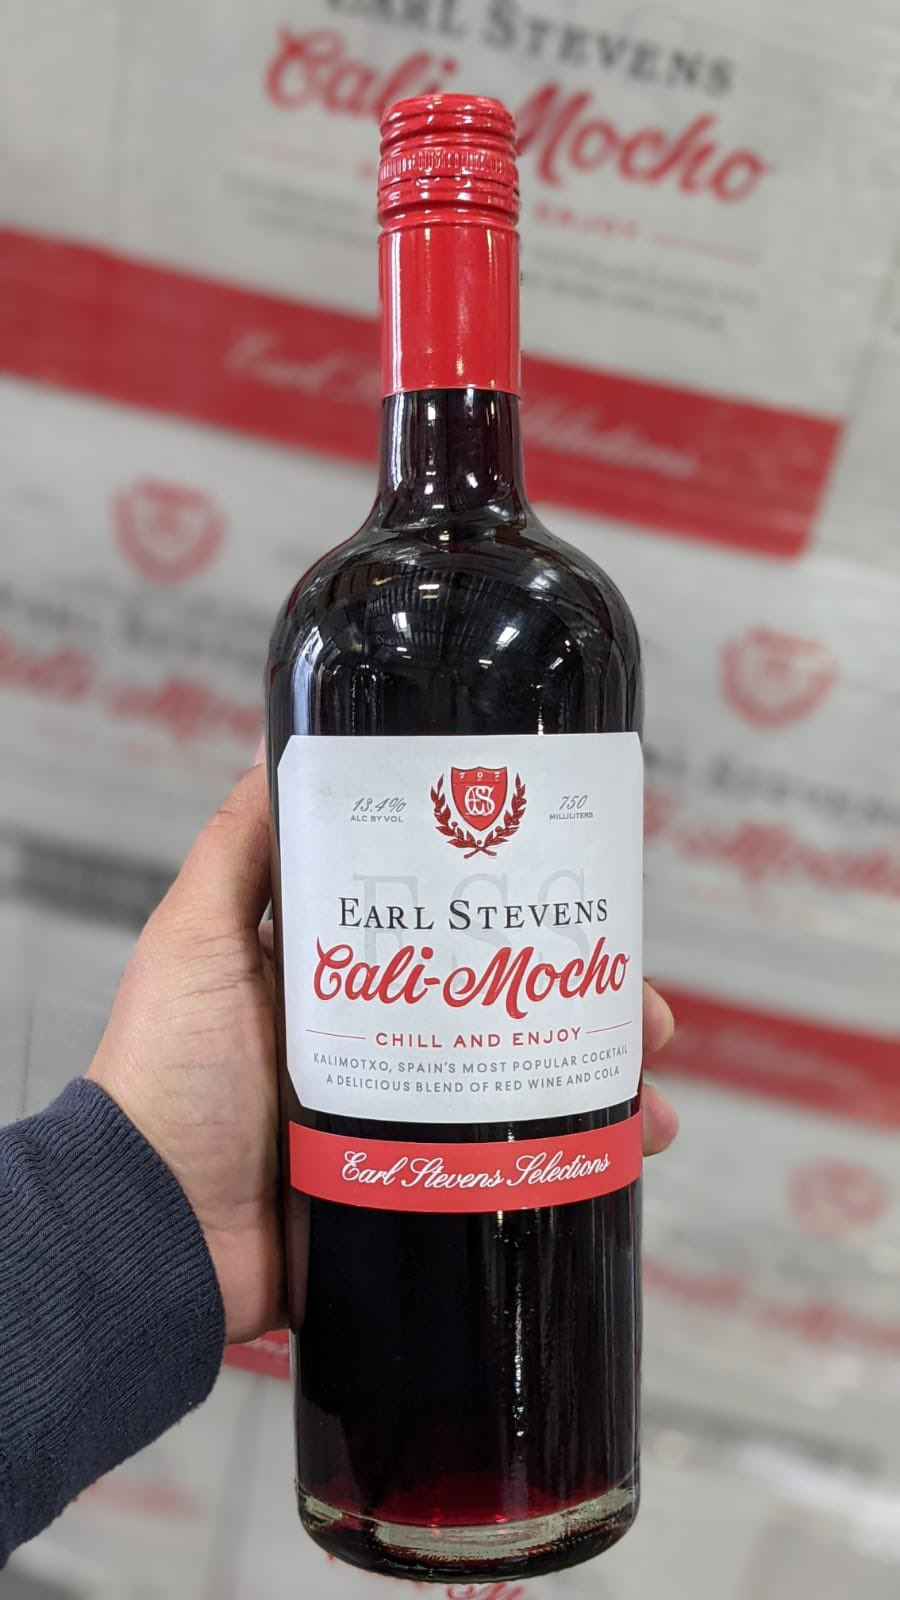 E40 Terms Conditions On Twitter Have You Ever Had Redwine Cola If You Haven T Say Less I Got What You Need Earlstevens Cali Mocho Spains Most Popular Cocktail A Delicious Blend